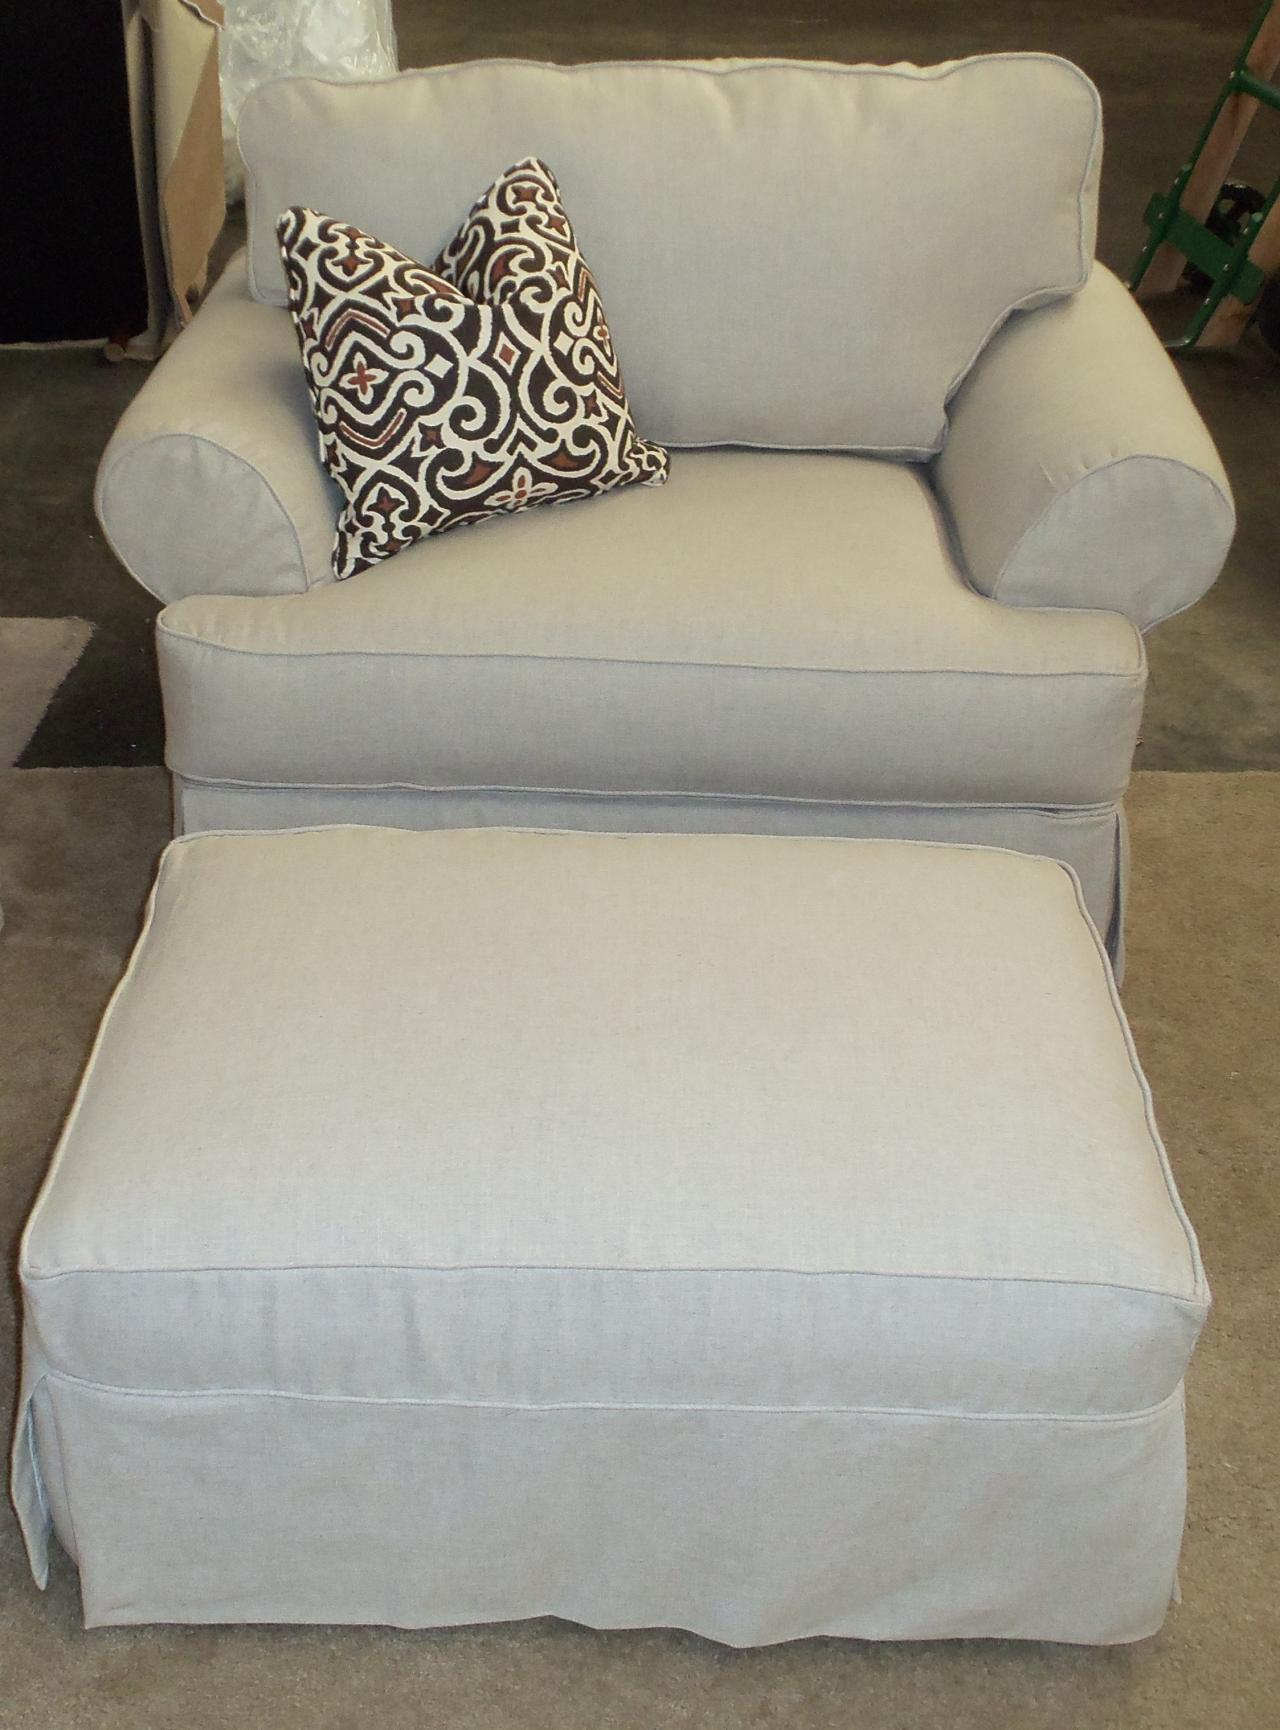 Slipcover For Oversized Chair And Ottoman Barnett Furniture Rowe Furniture Addison Slipcover